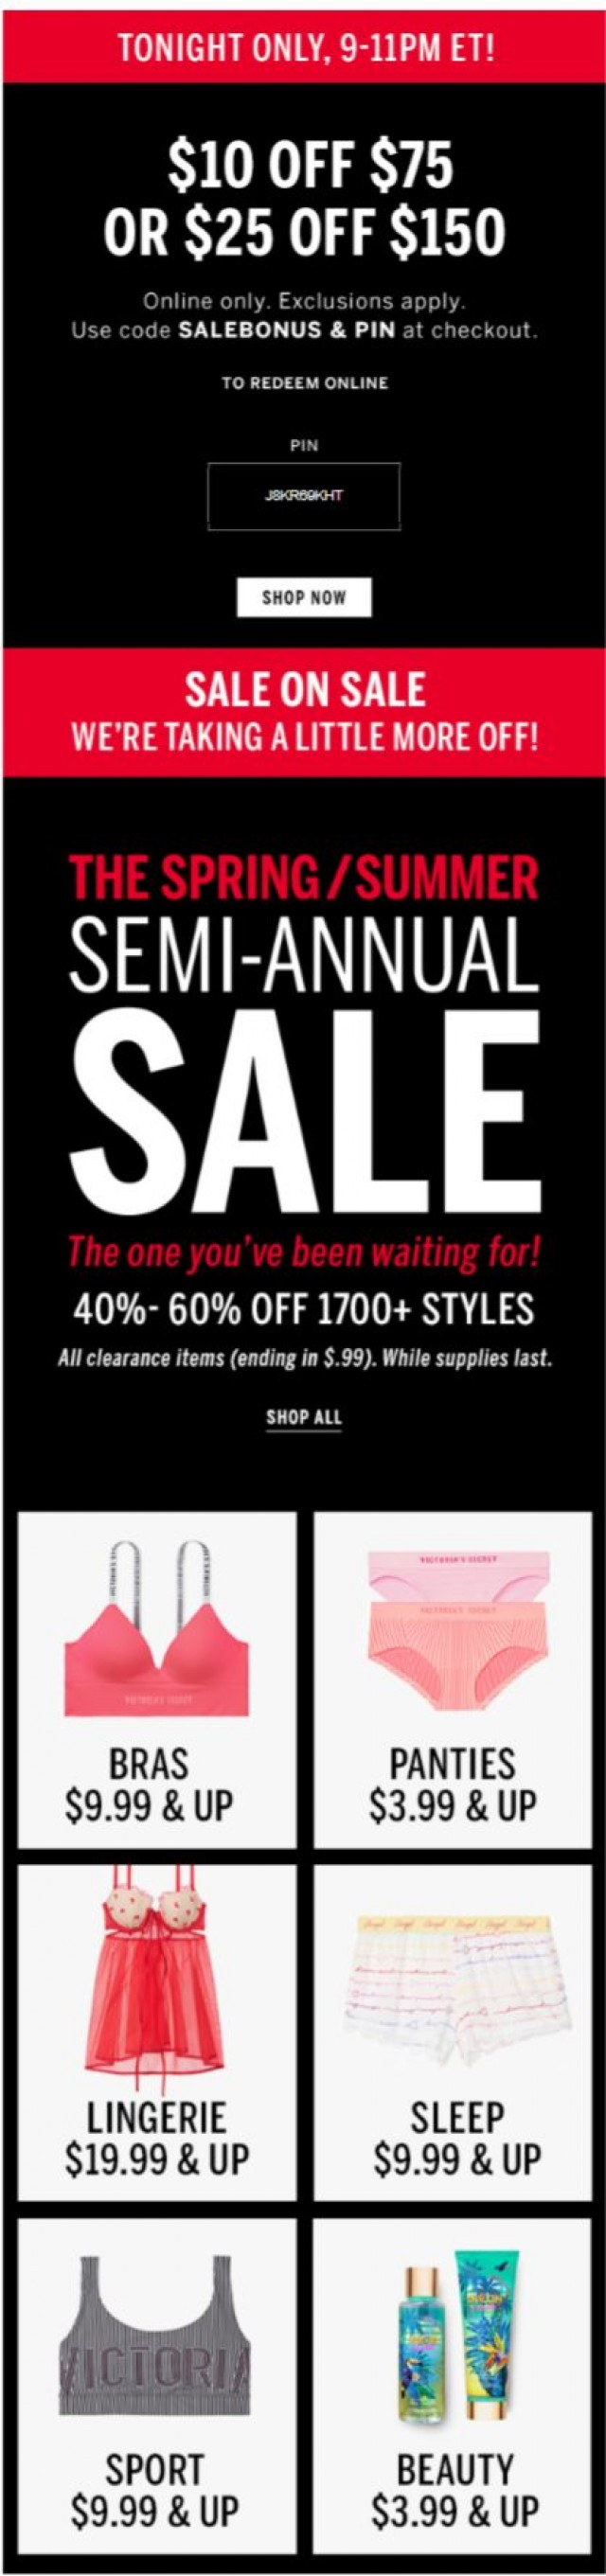 Coupon for: Victoria's Secret - 9PM ET! Get $10 off your $75 purchase